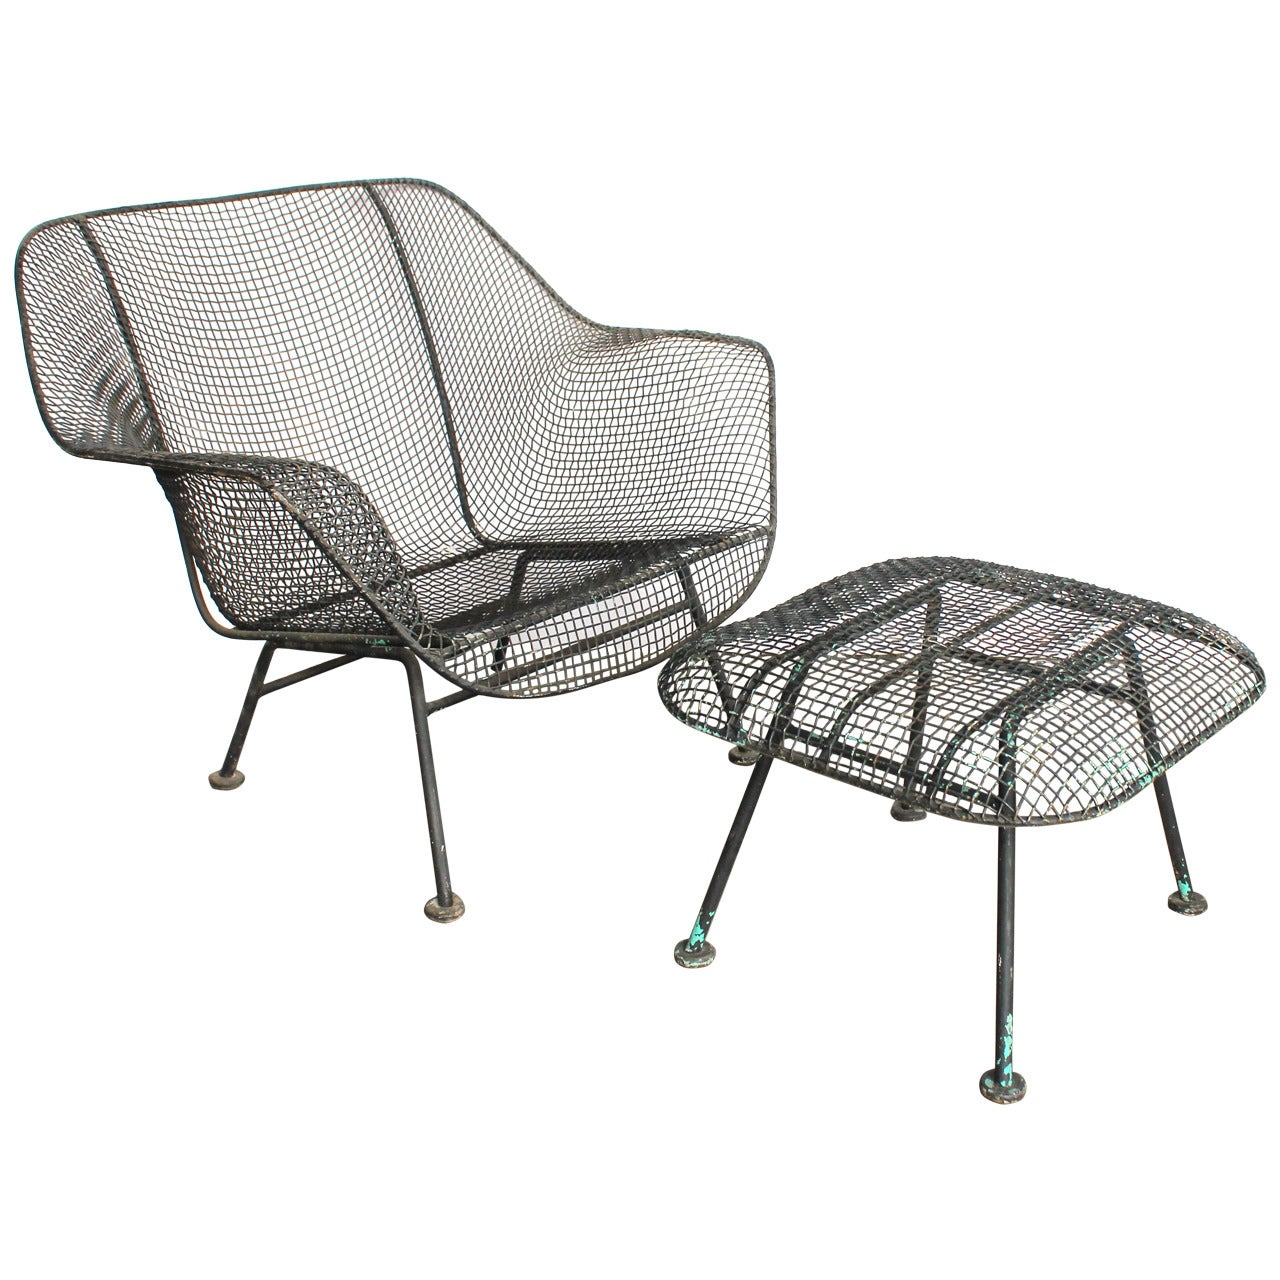 Mid century sculptura garden lounge chair and ottoman by woodard for sale at 1stdibs